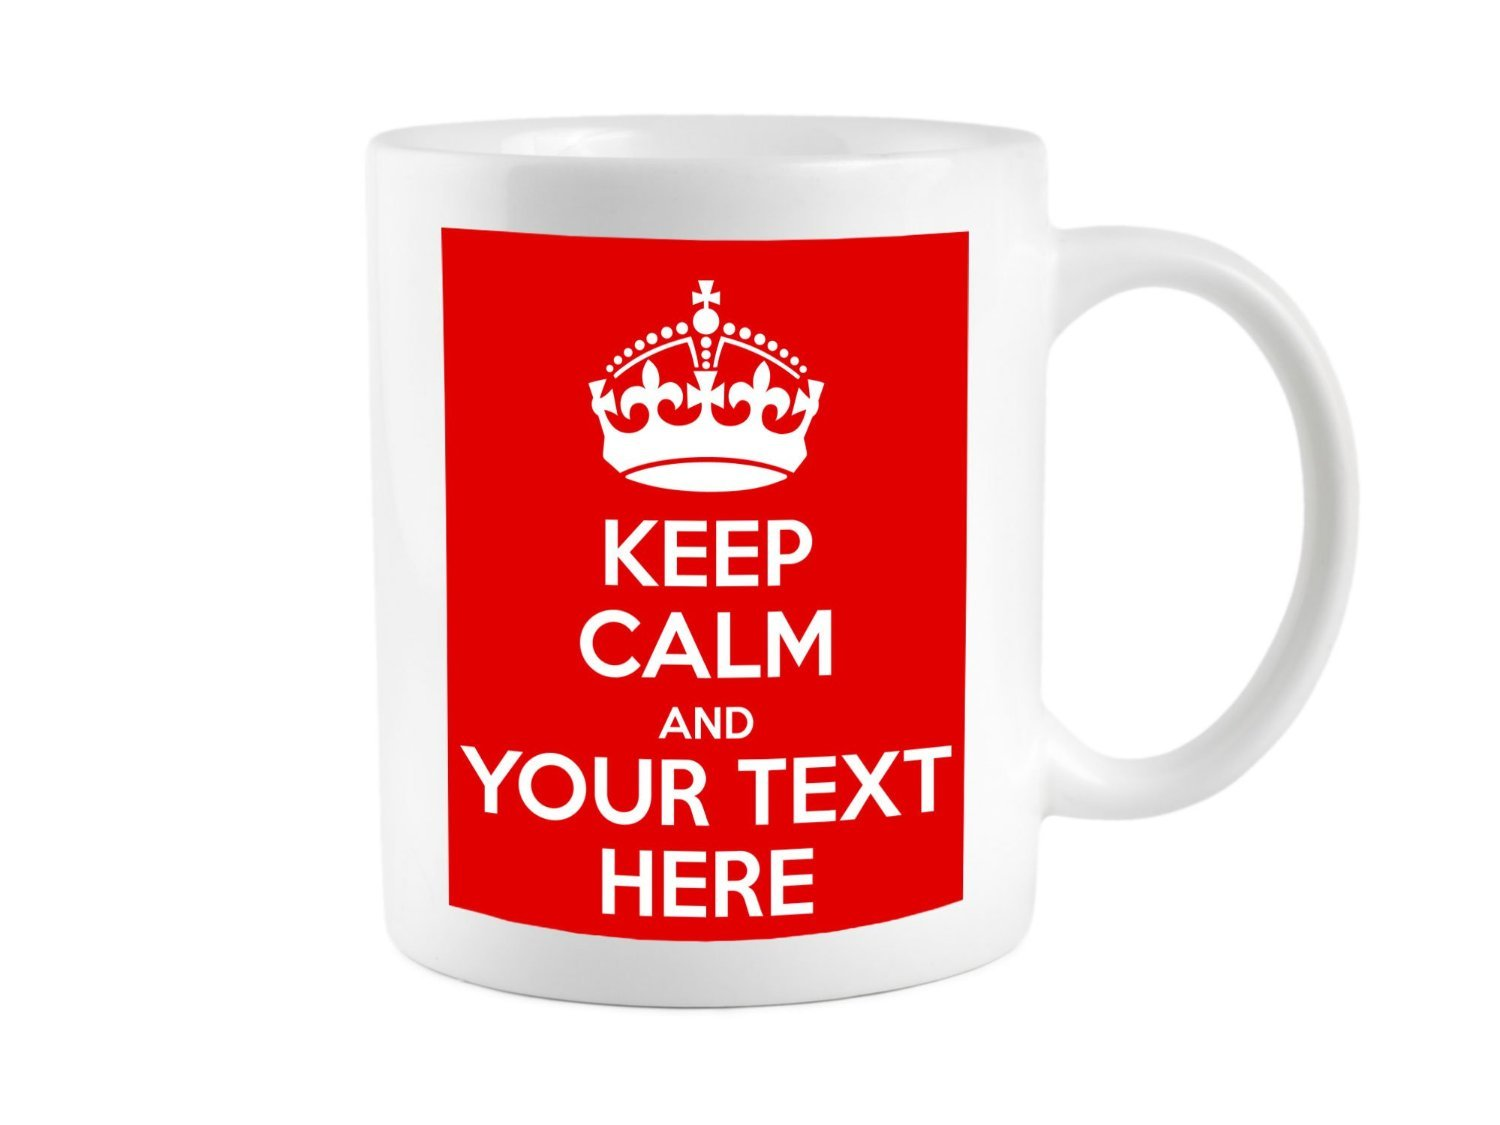 da285d825fa75 KEEP CALM AND CARRY ON PERSONALISED WITH ANY TEXT GIFT MUG CUP RETRO   Amazon.co.uk  Kitchen   Home